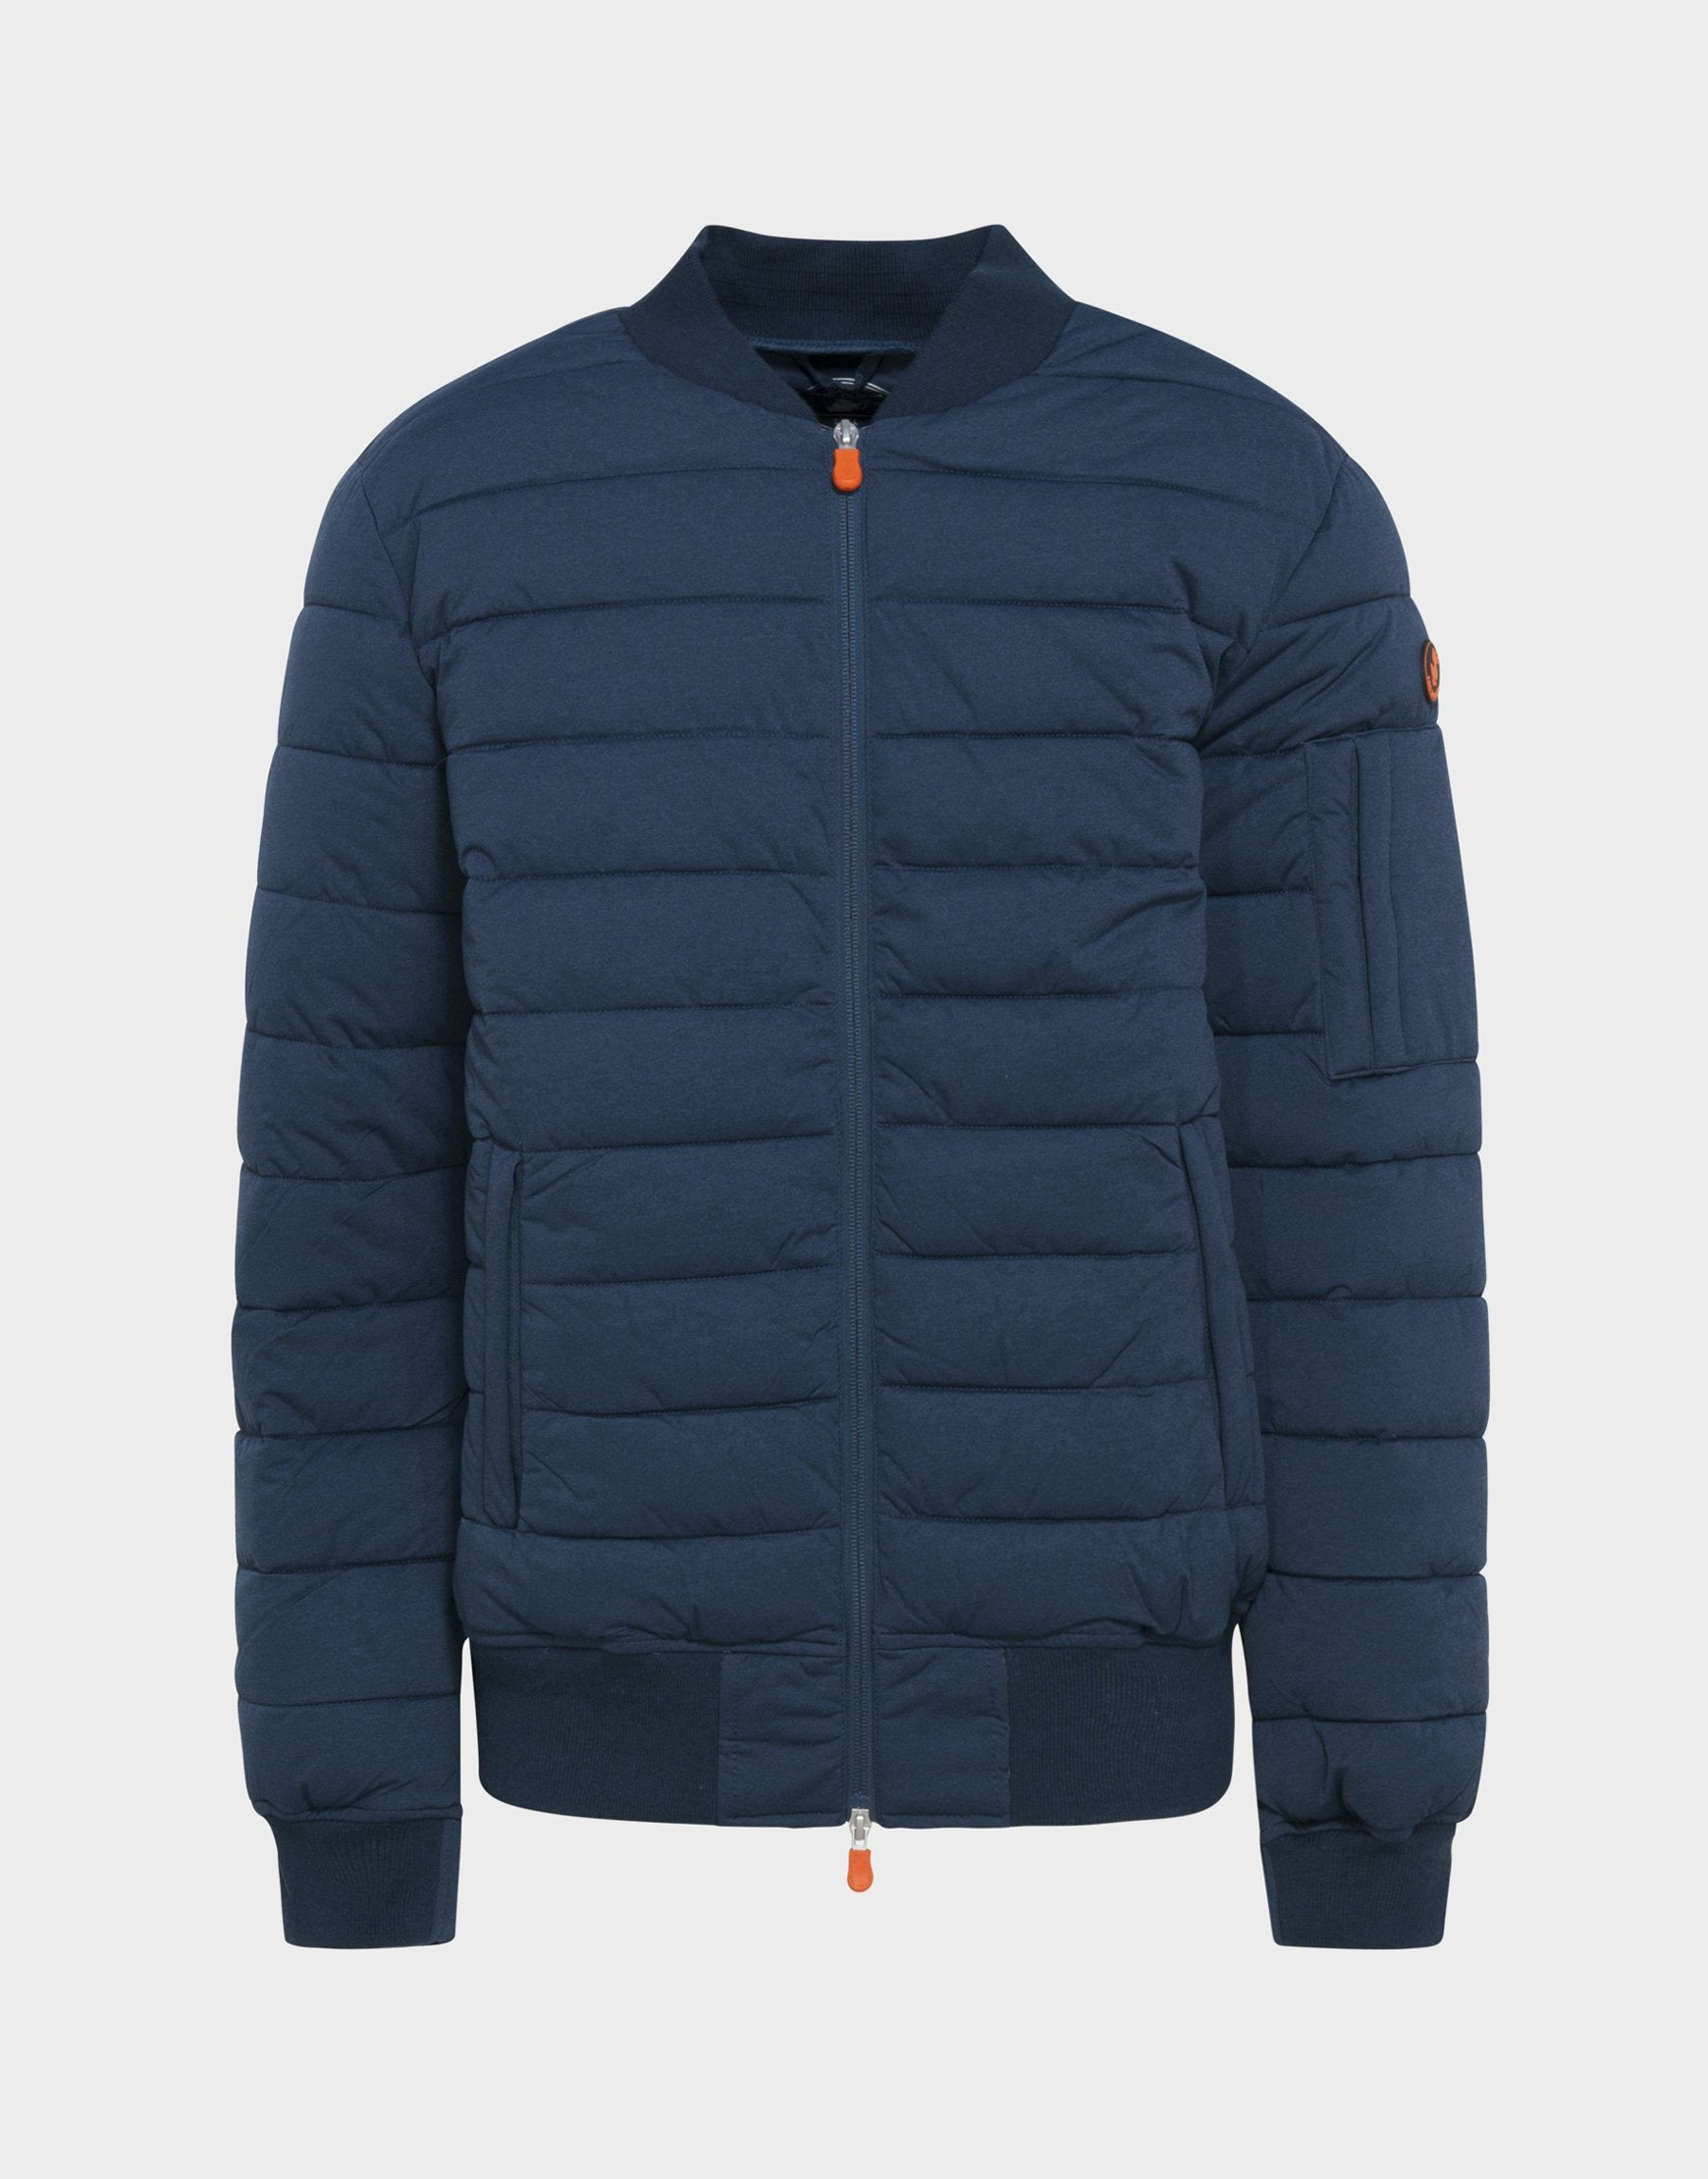 MENS ANGY STRETCH JACKET IN Navy Blue Melange